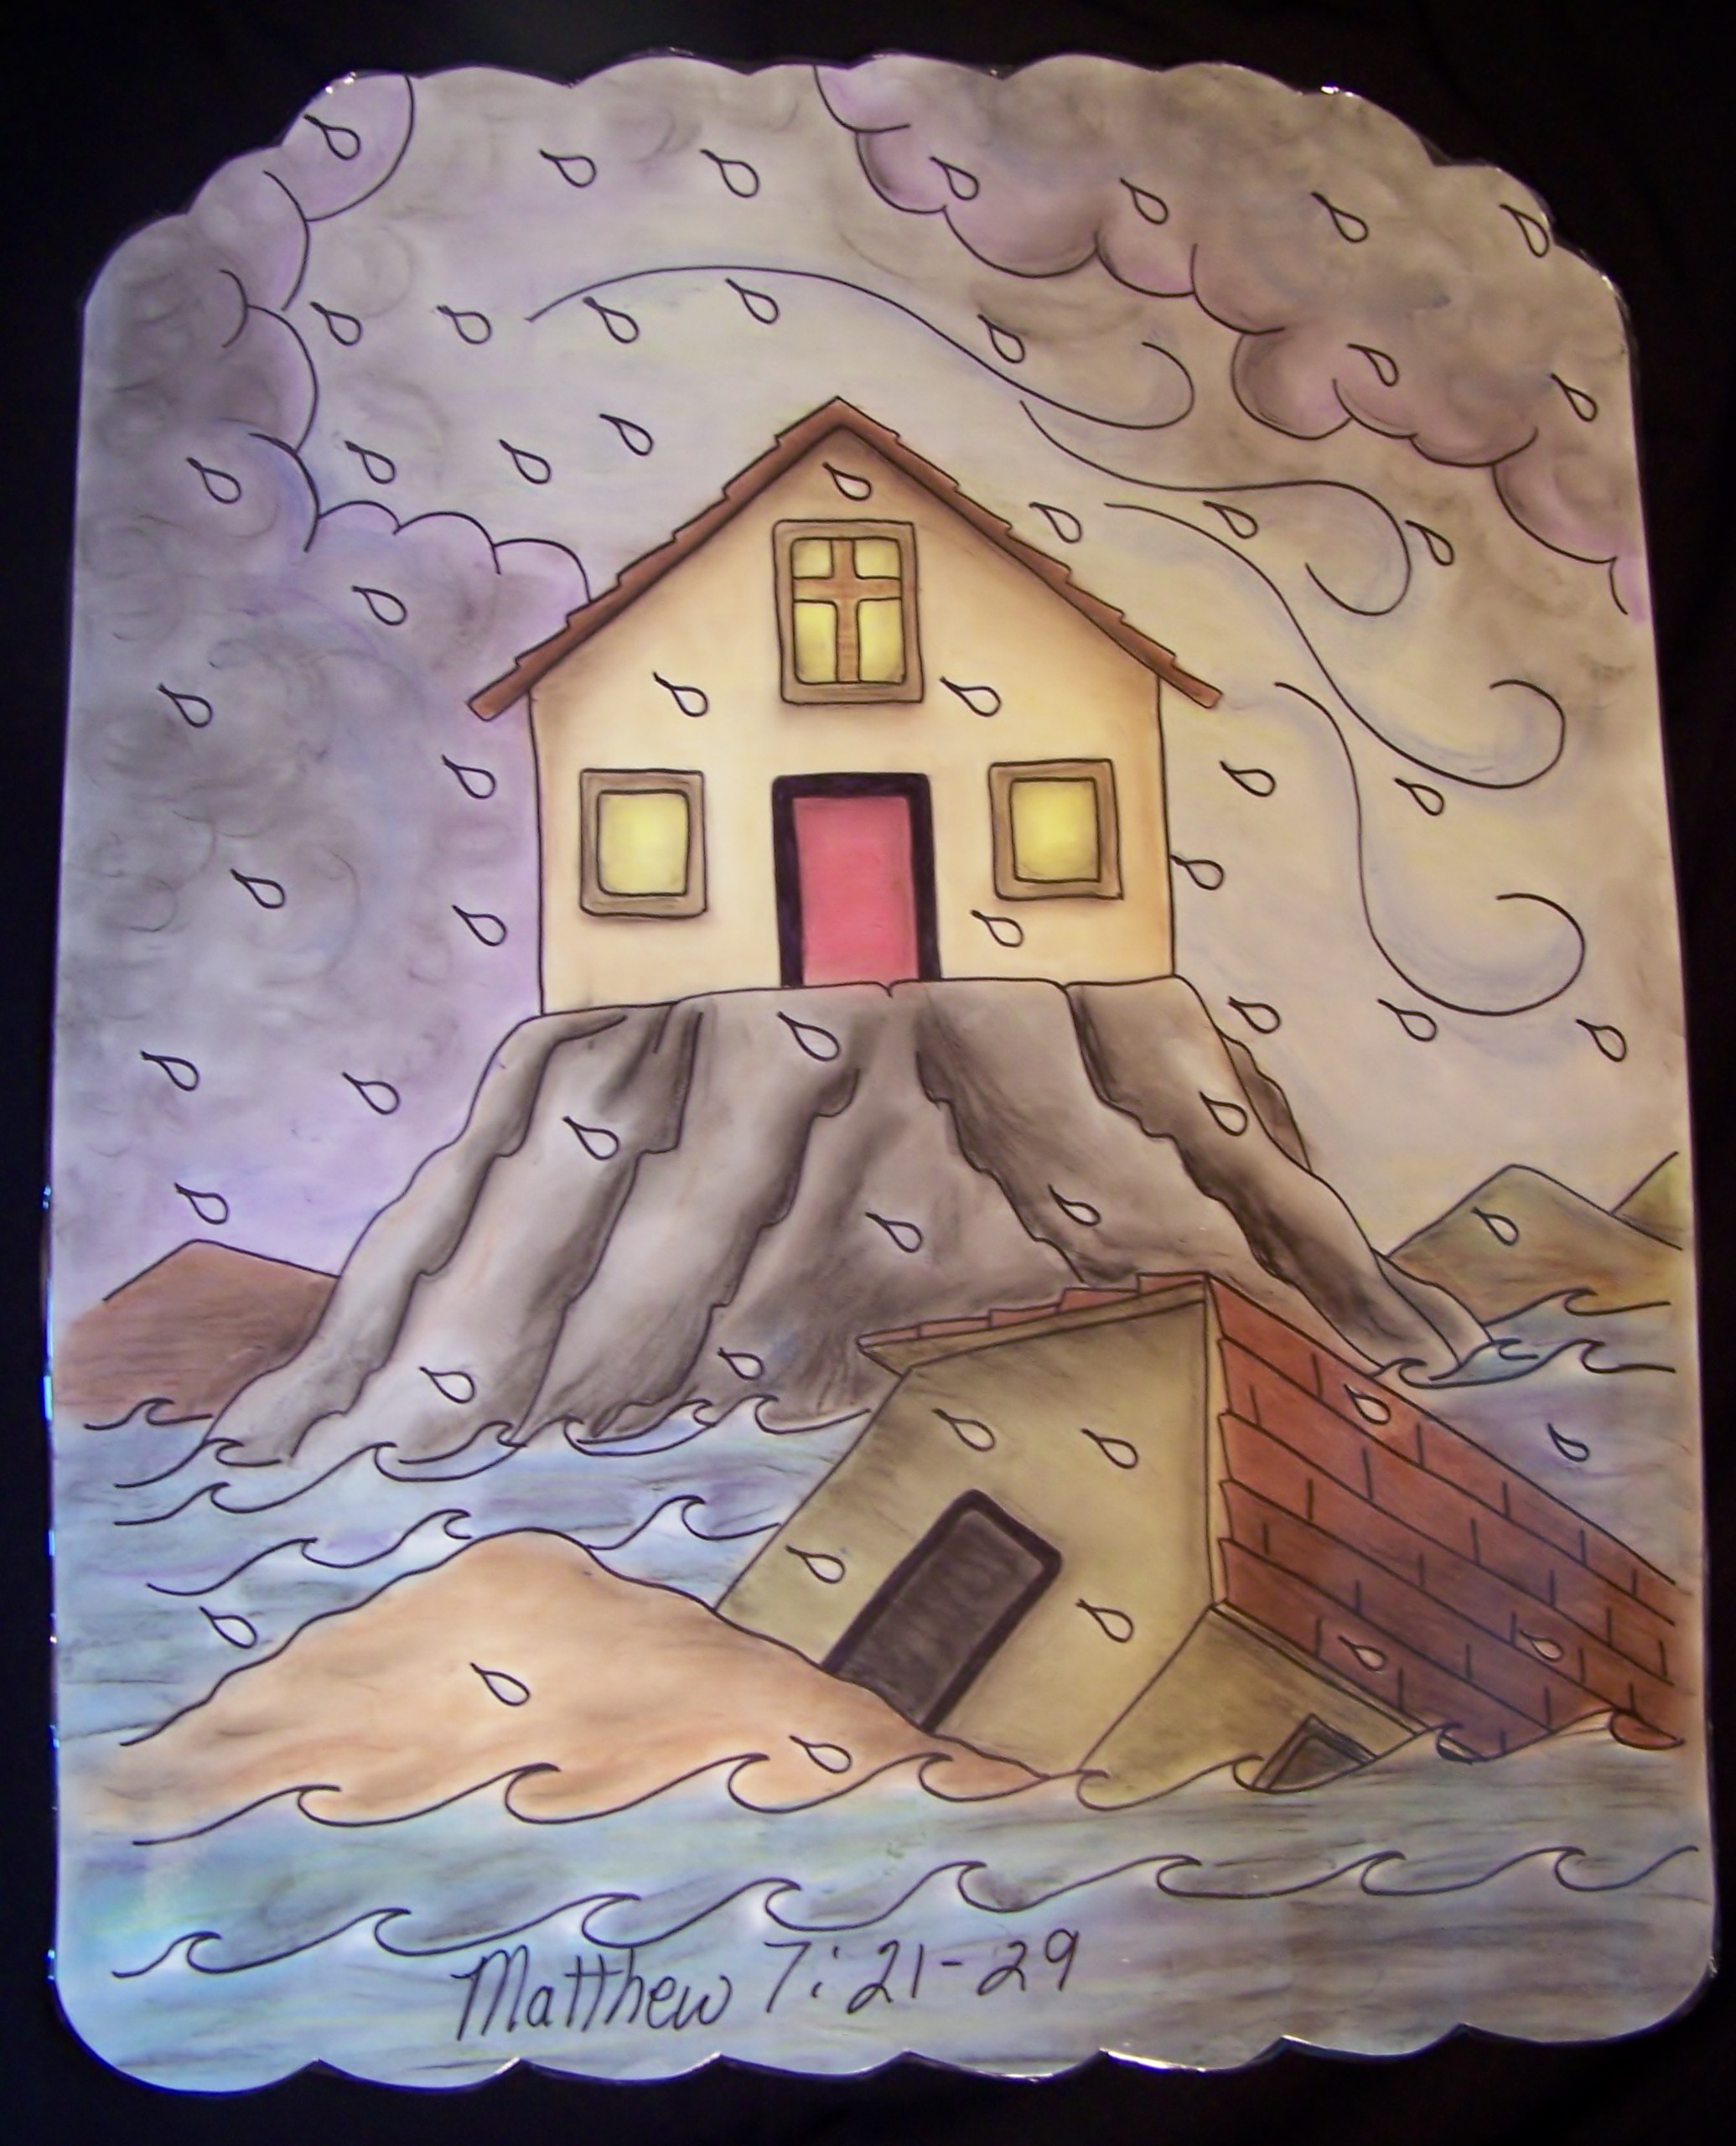 Wise man built his house upon the rock sermon - He Said Whoever Listens To What I Say And Obeys My Words Will Be Like The Wise Man Who Built His House On The Rock When The Rains Came Down And The